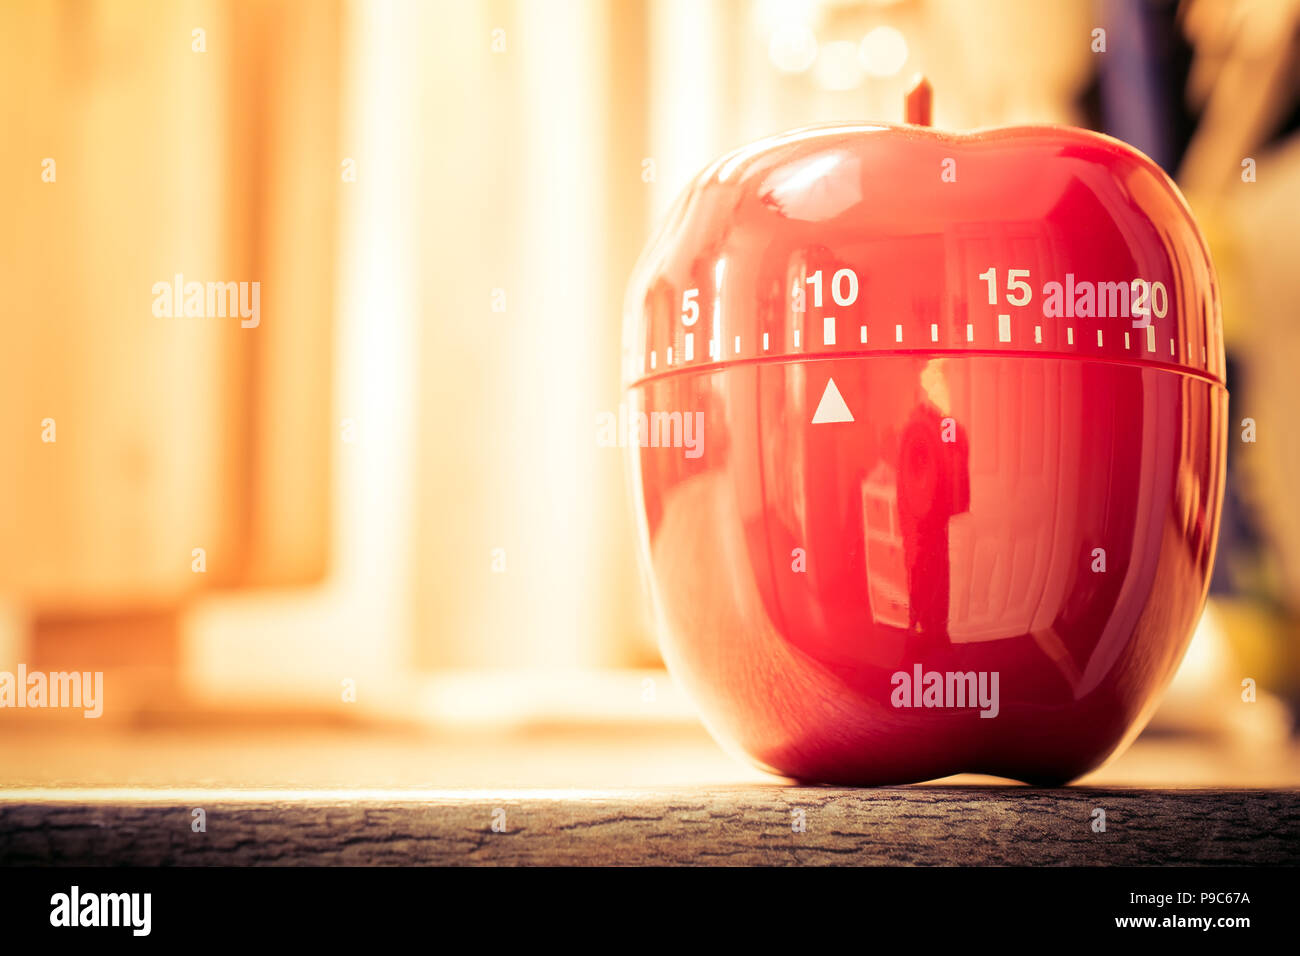 10 minutes red kitchen egg timer in bright atmosphere stock image